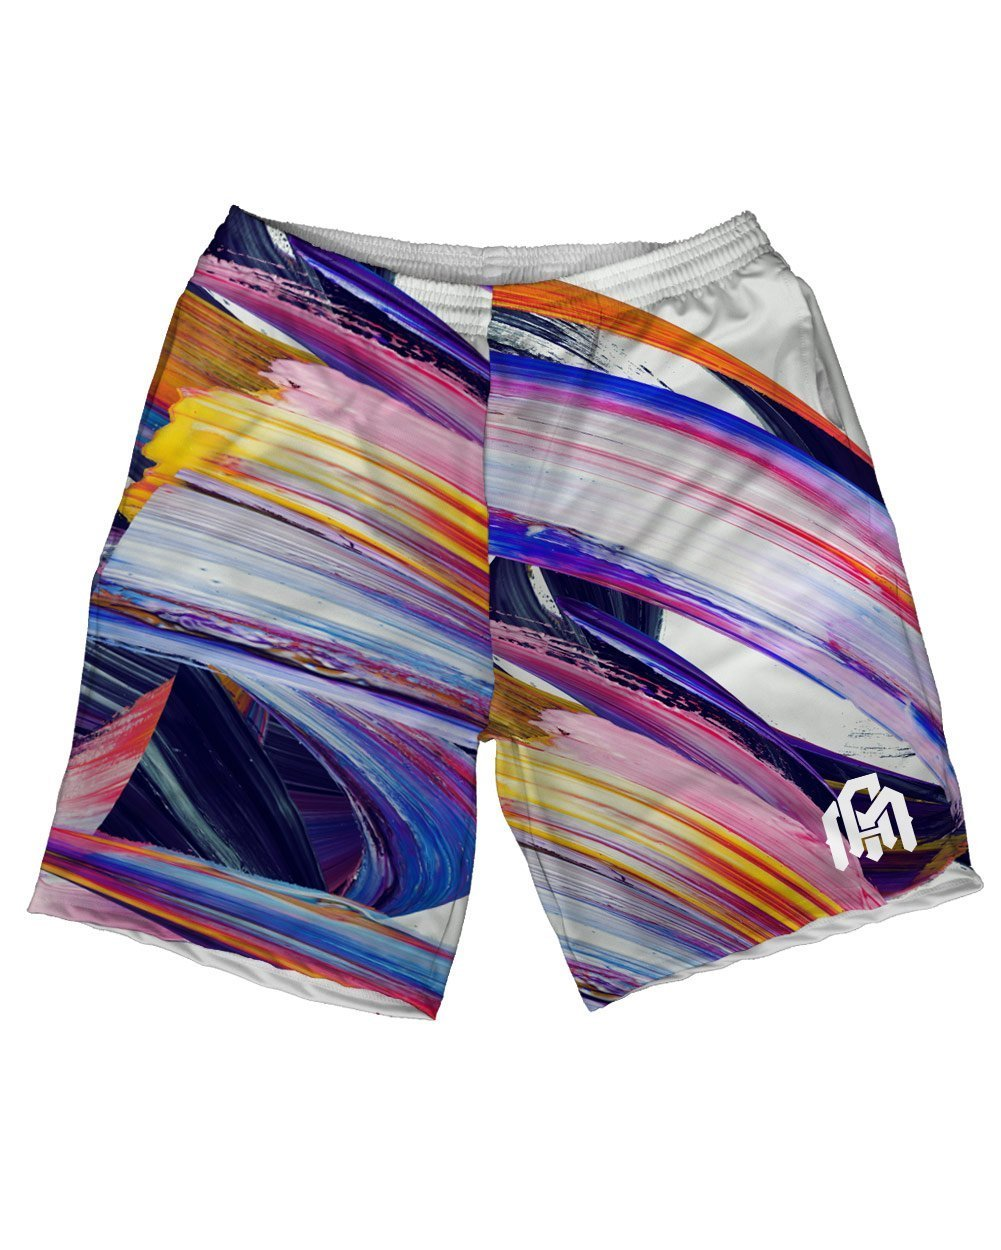 Muse Men's Shorts-Front